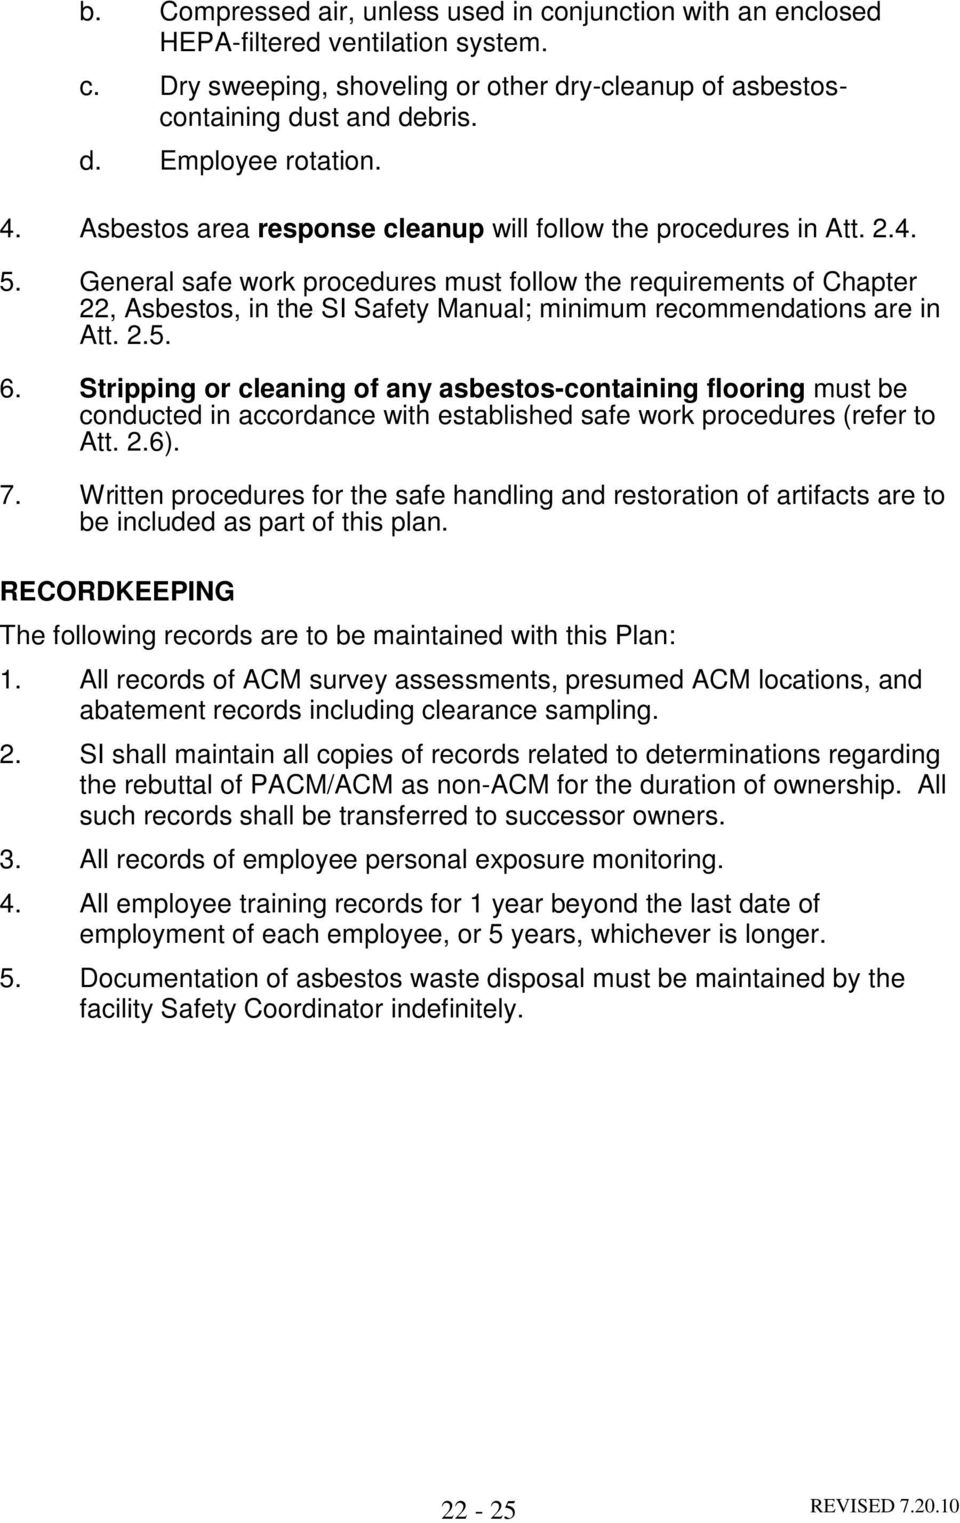 General safe work procedures must follow the requirements of Chapter 22, Asbestos, in the SI Safety Manual; minimum recommendations are in Att. 2.5. 6.